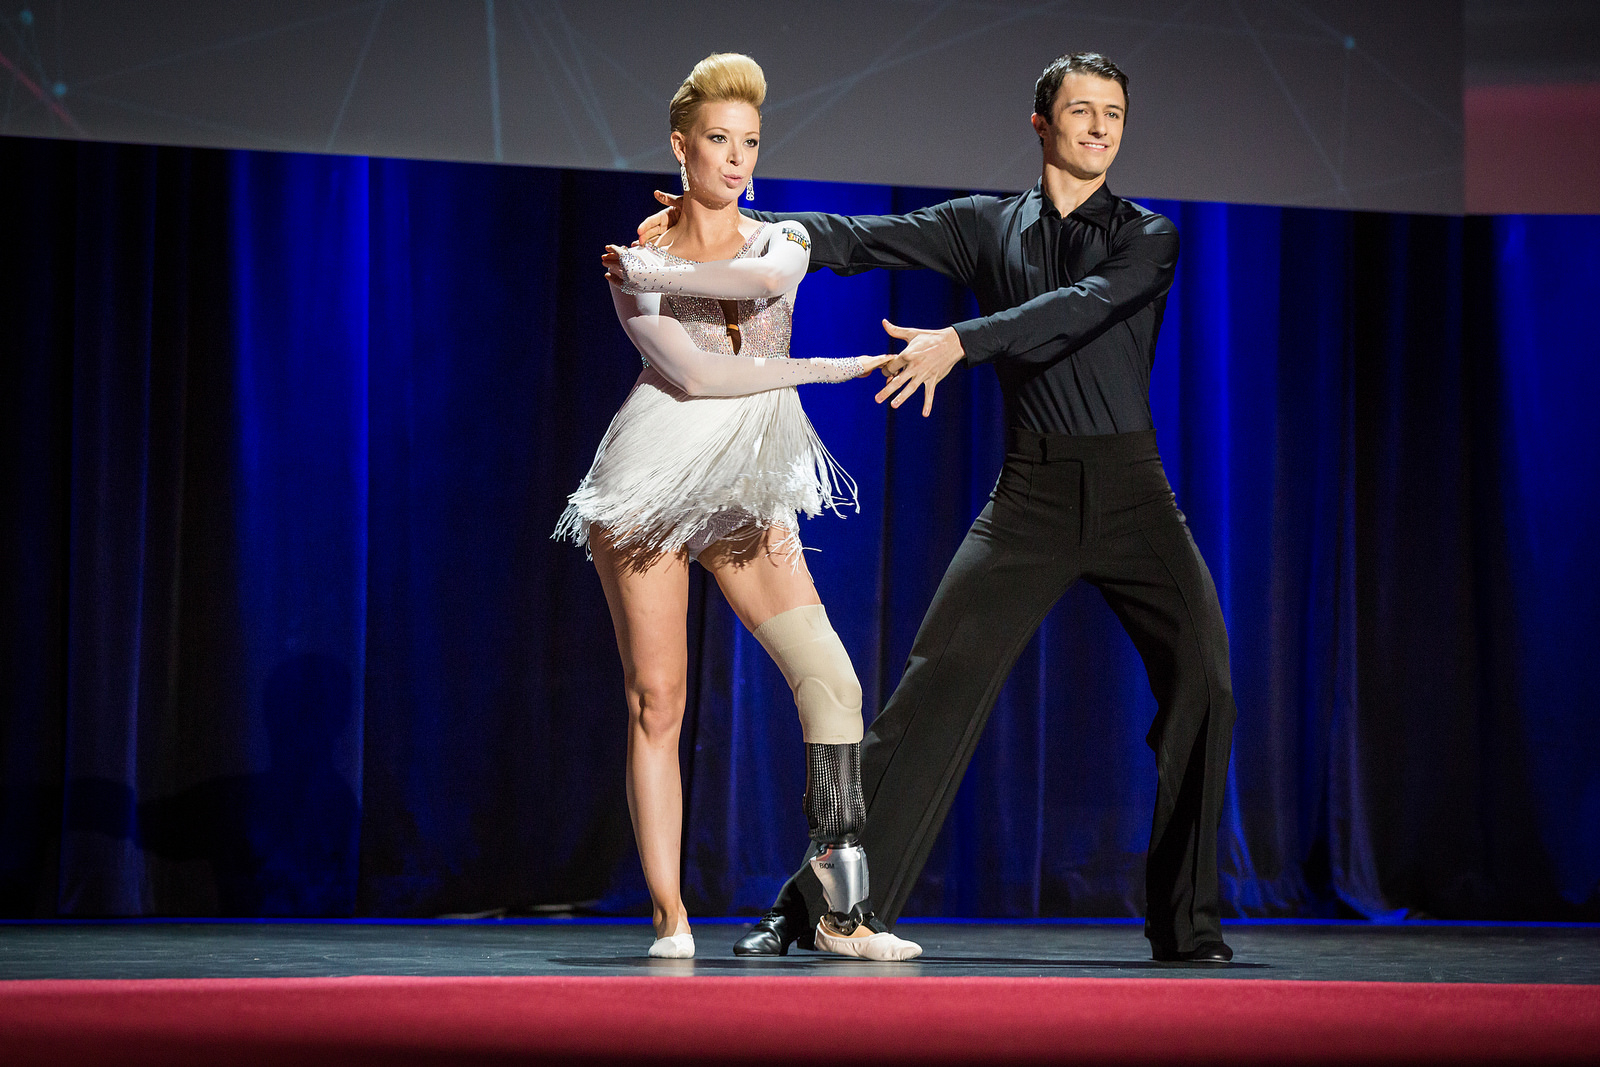 Dancer Adrianne Haslet-Davis lost her left leg in the Boston Marathon bombing. Today, she danced for the first time since thanks to an ultra high-tech prosthetic created by Hugh Herr's lab at MIT. Photo: James Duncan Davidson